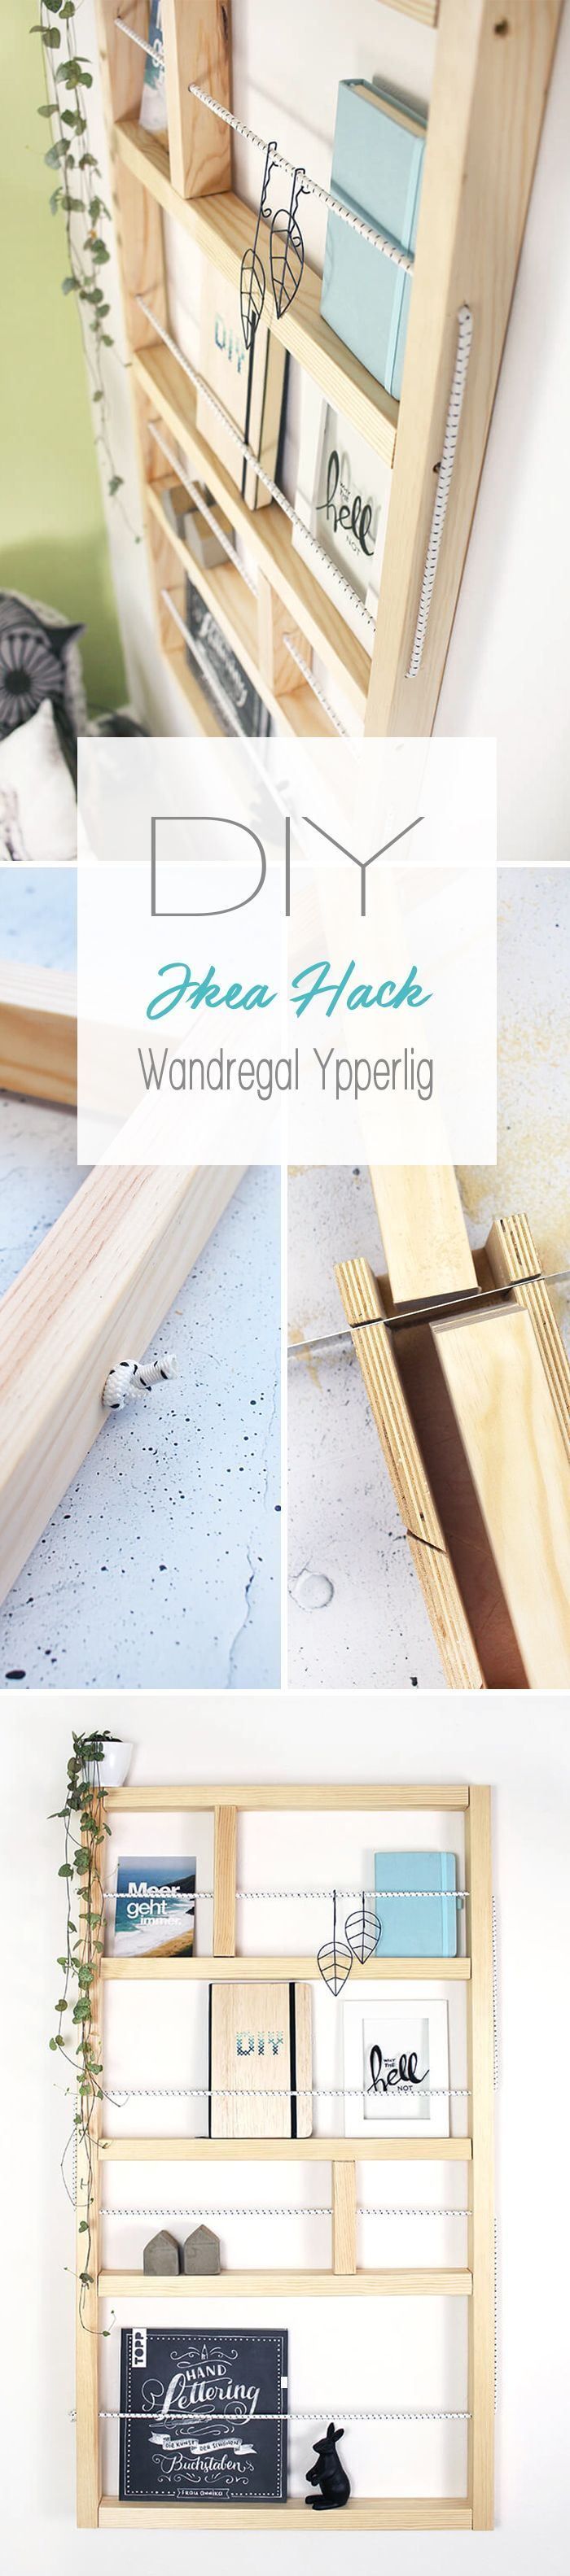 Do it yourself: Ypperlig Wandregal selbst nachbauen